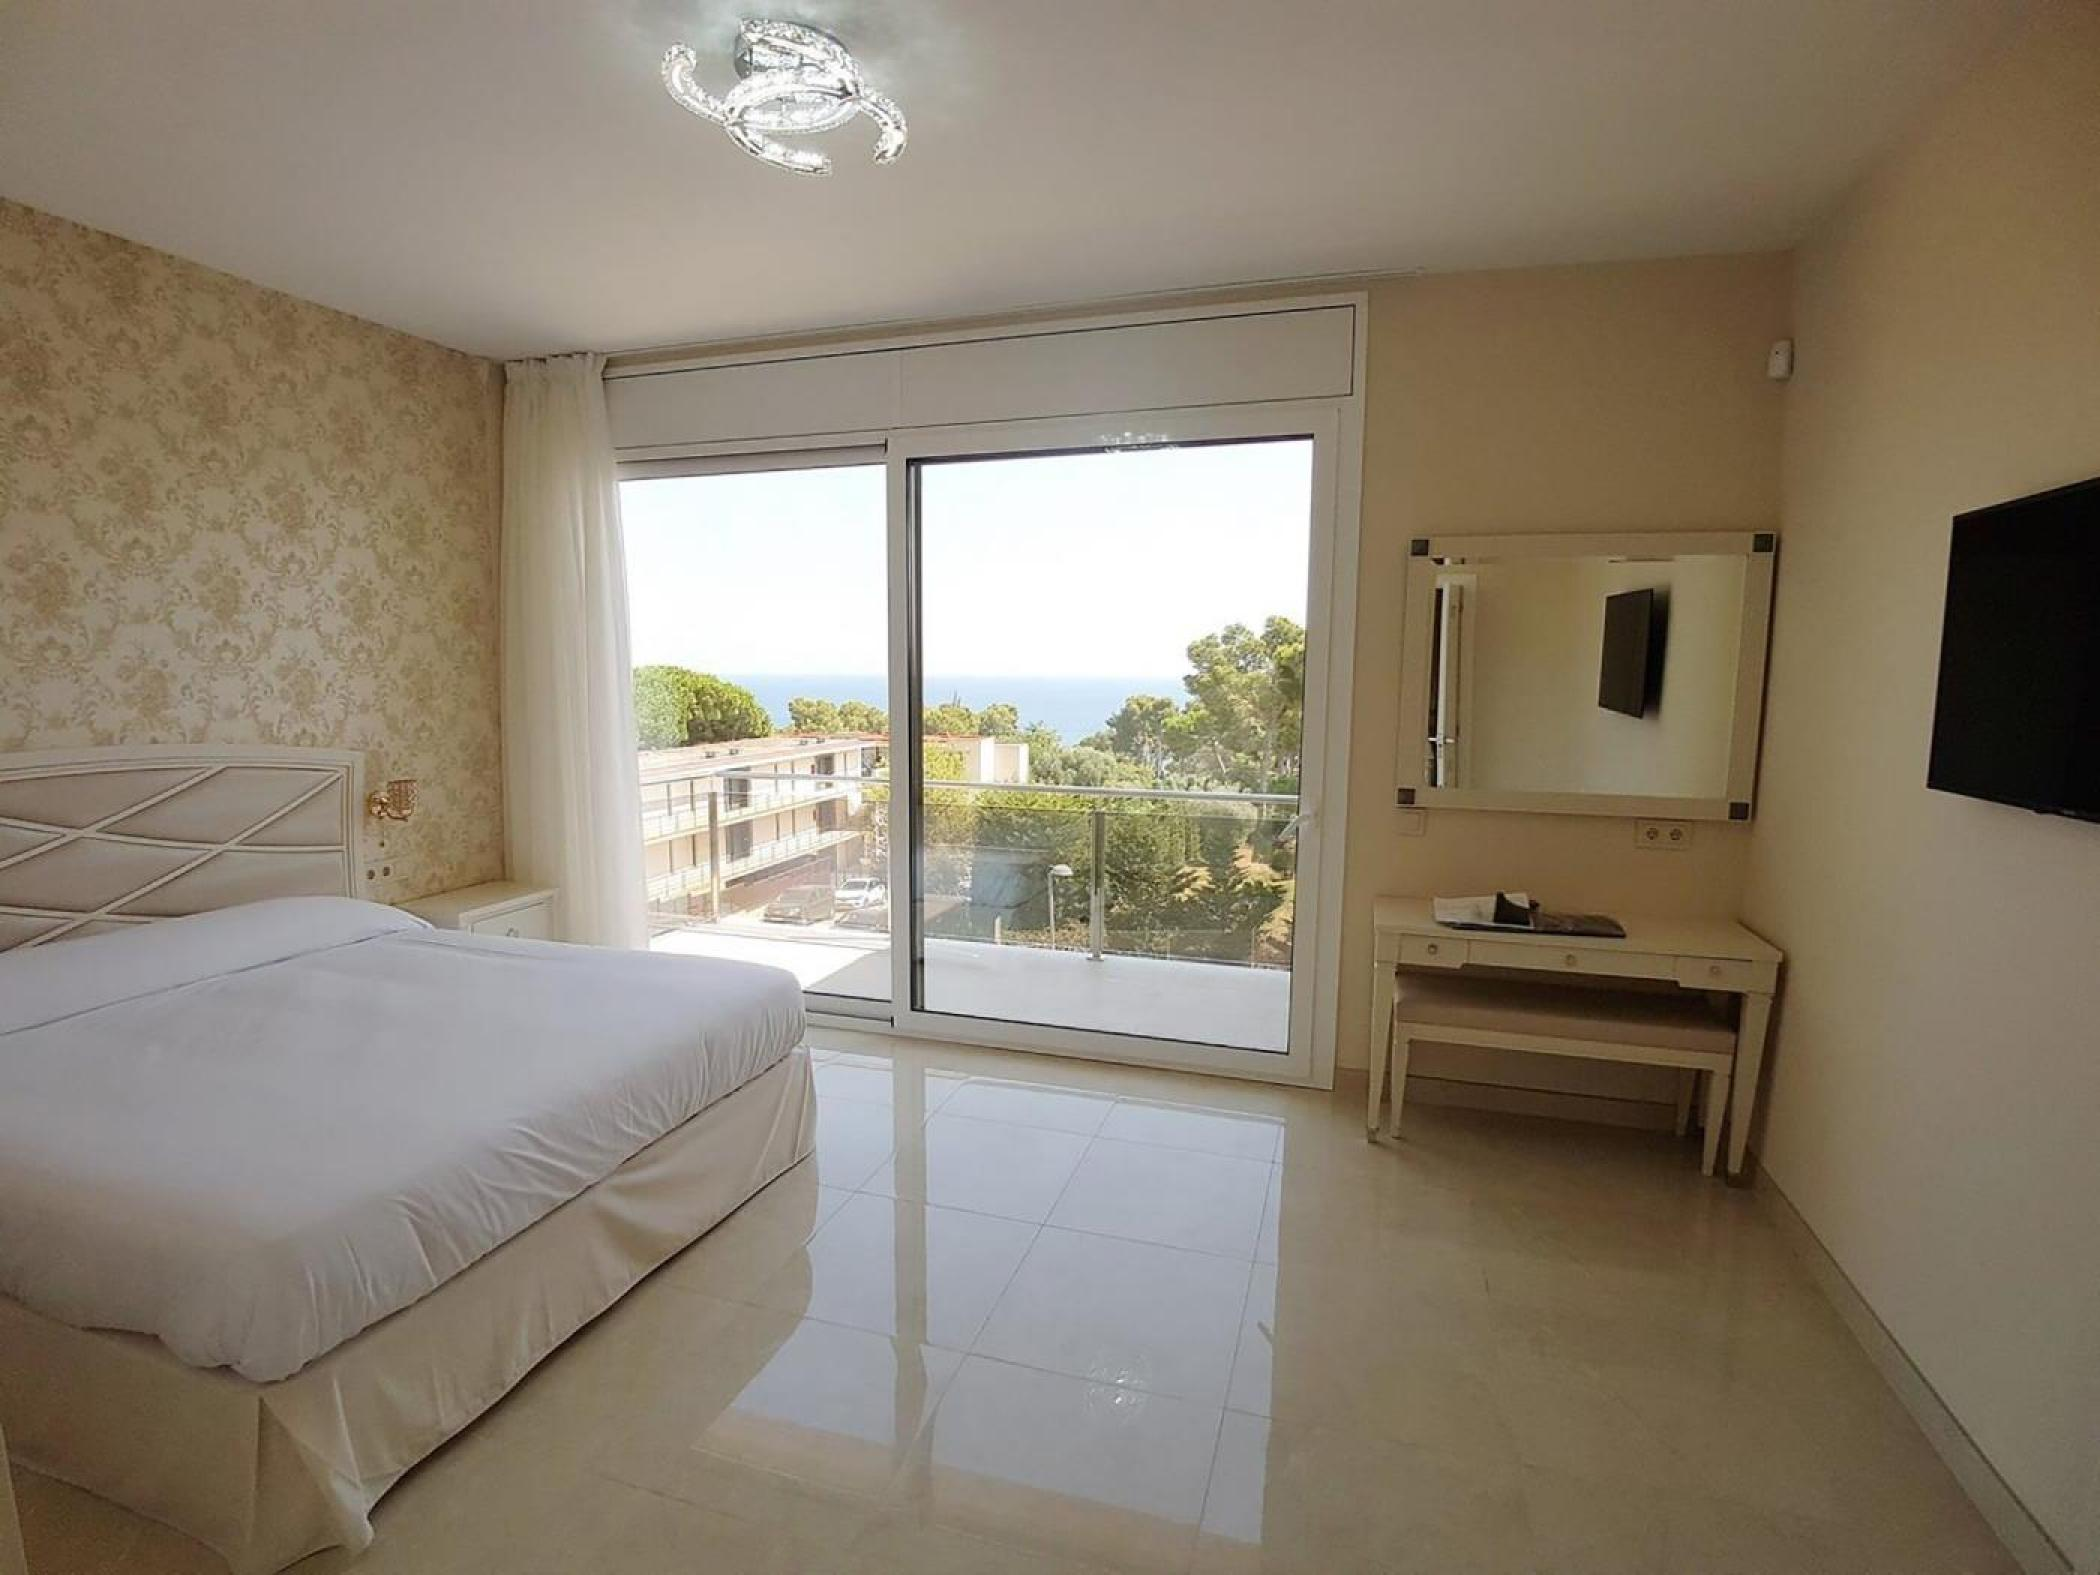 Rent Villa with Swimming pool in Platja d'Aro - Girorooms Travel Calma Holiday Villas jacuzzi 11 - 15